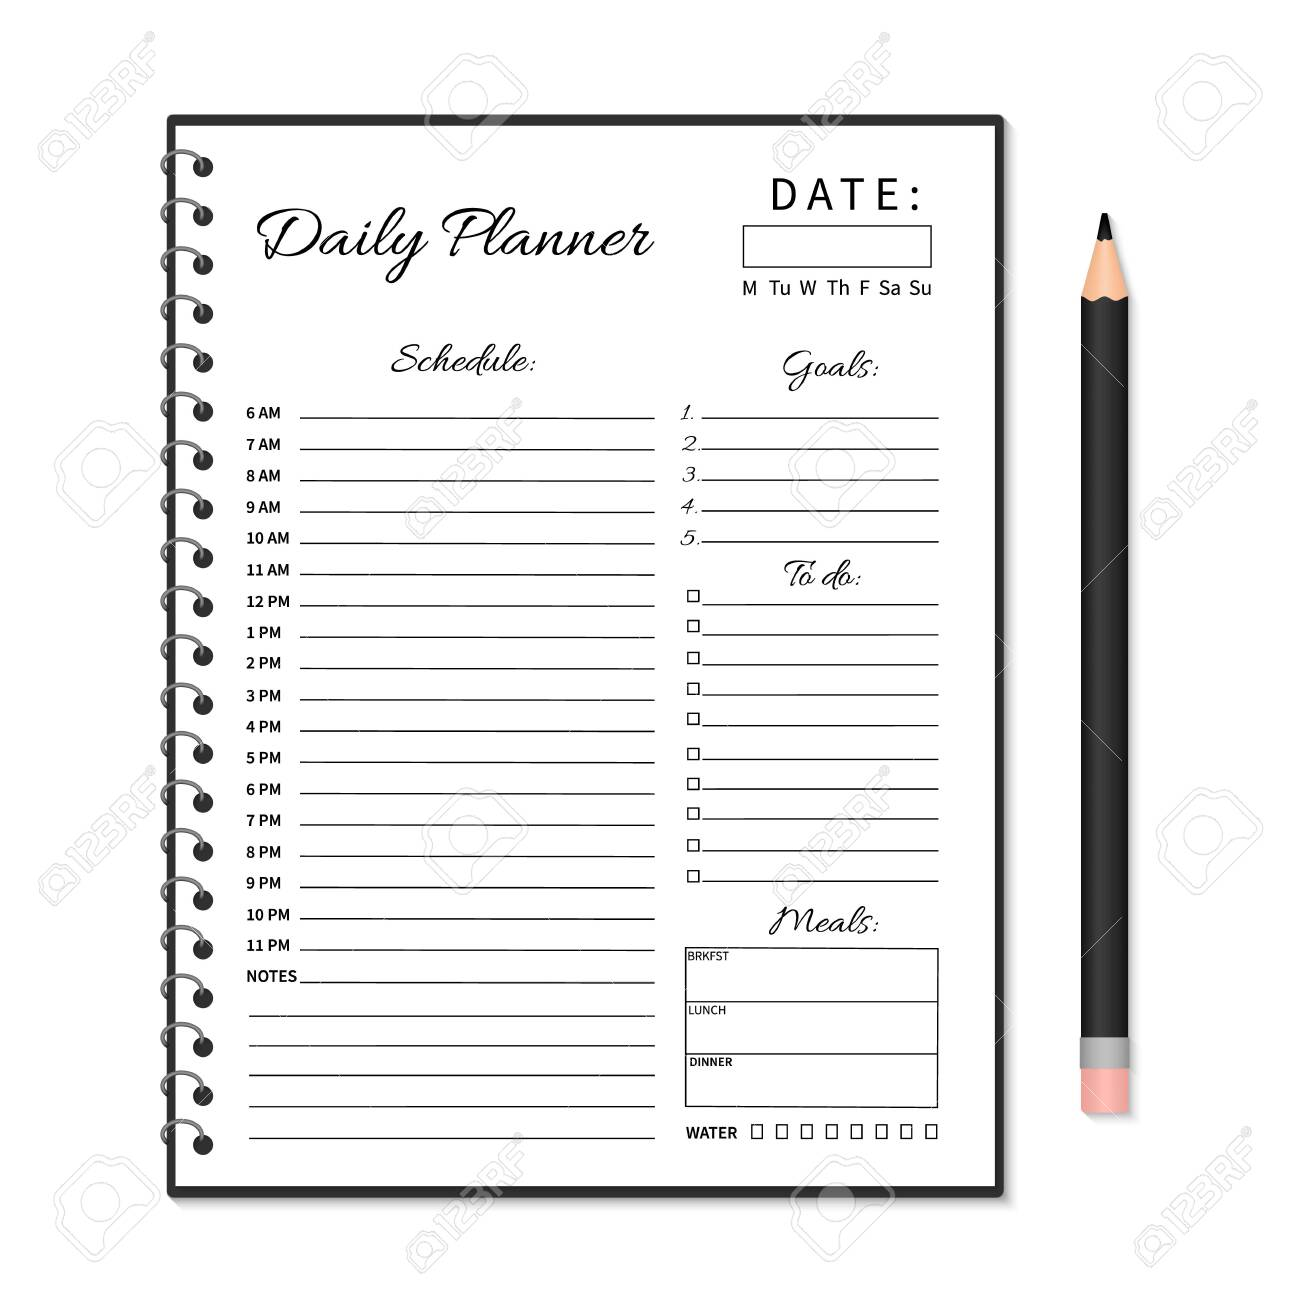 Free Printable Daily Planner for Students